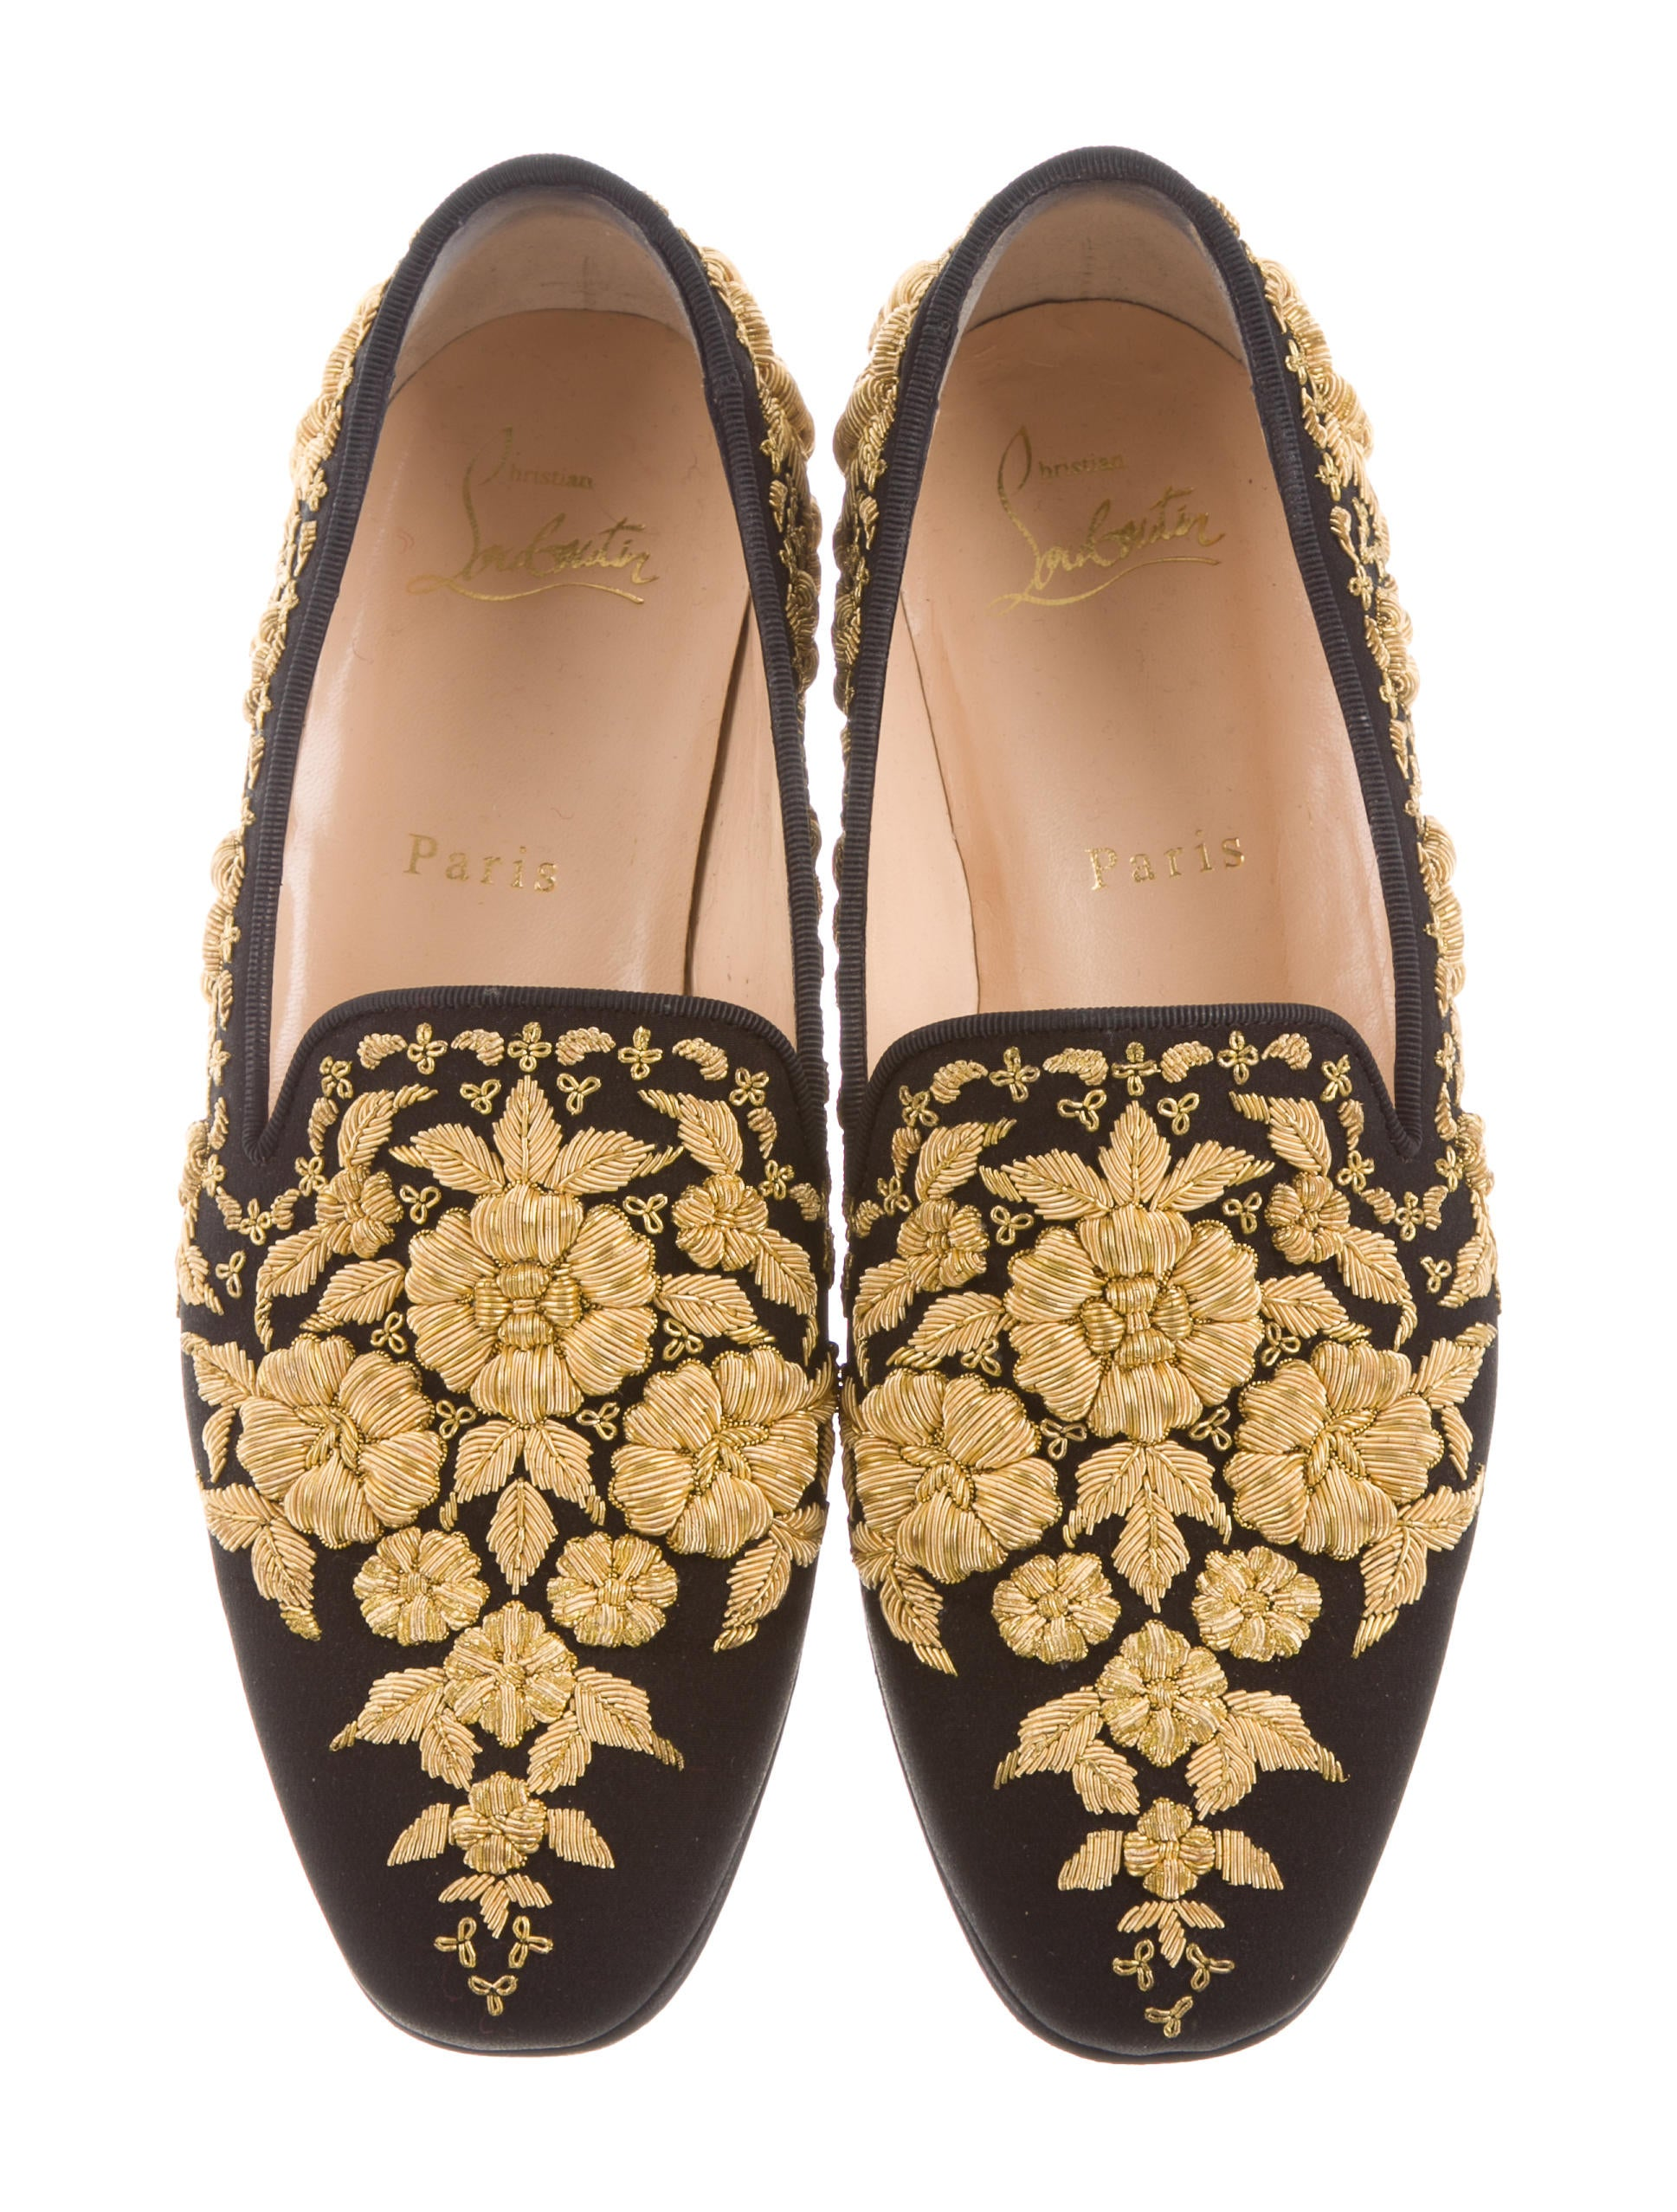 comfortable cheap online outlet limited edition Christian Louboutin Academica Floral Loafers store cheap online 100% authentic IuIoazDvbT